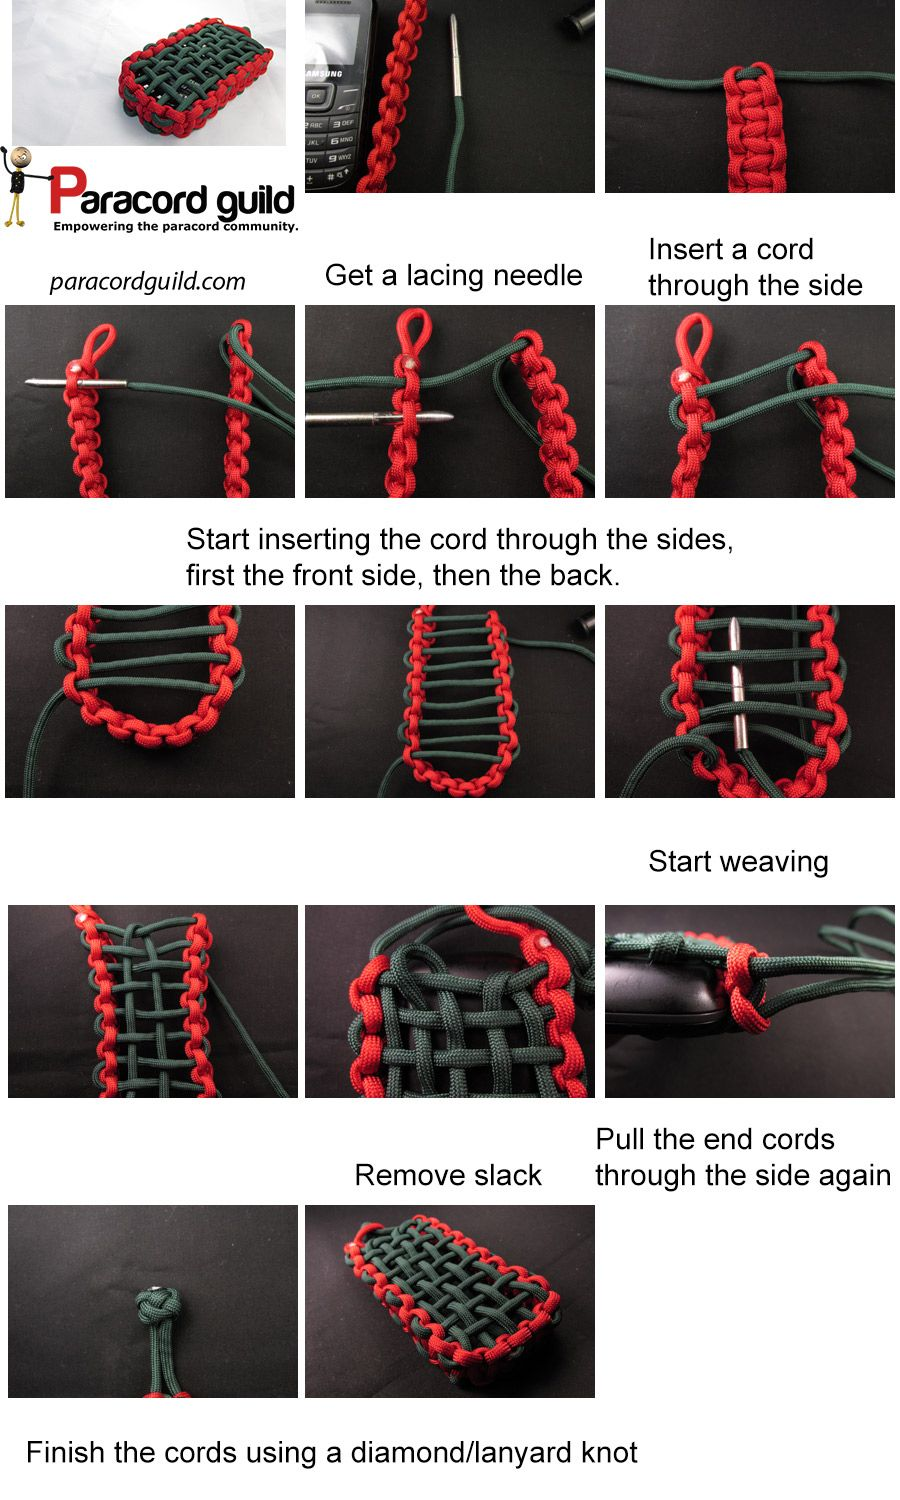 Making a paracord pouch to protect your riches! After